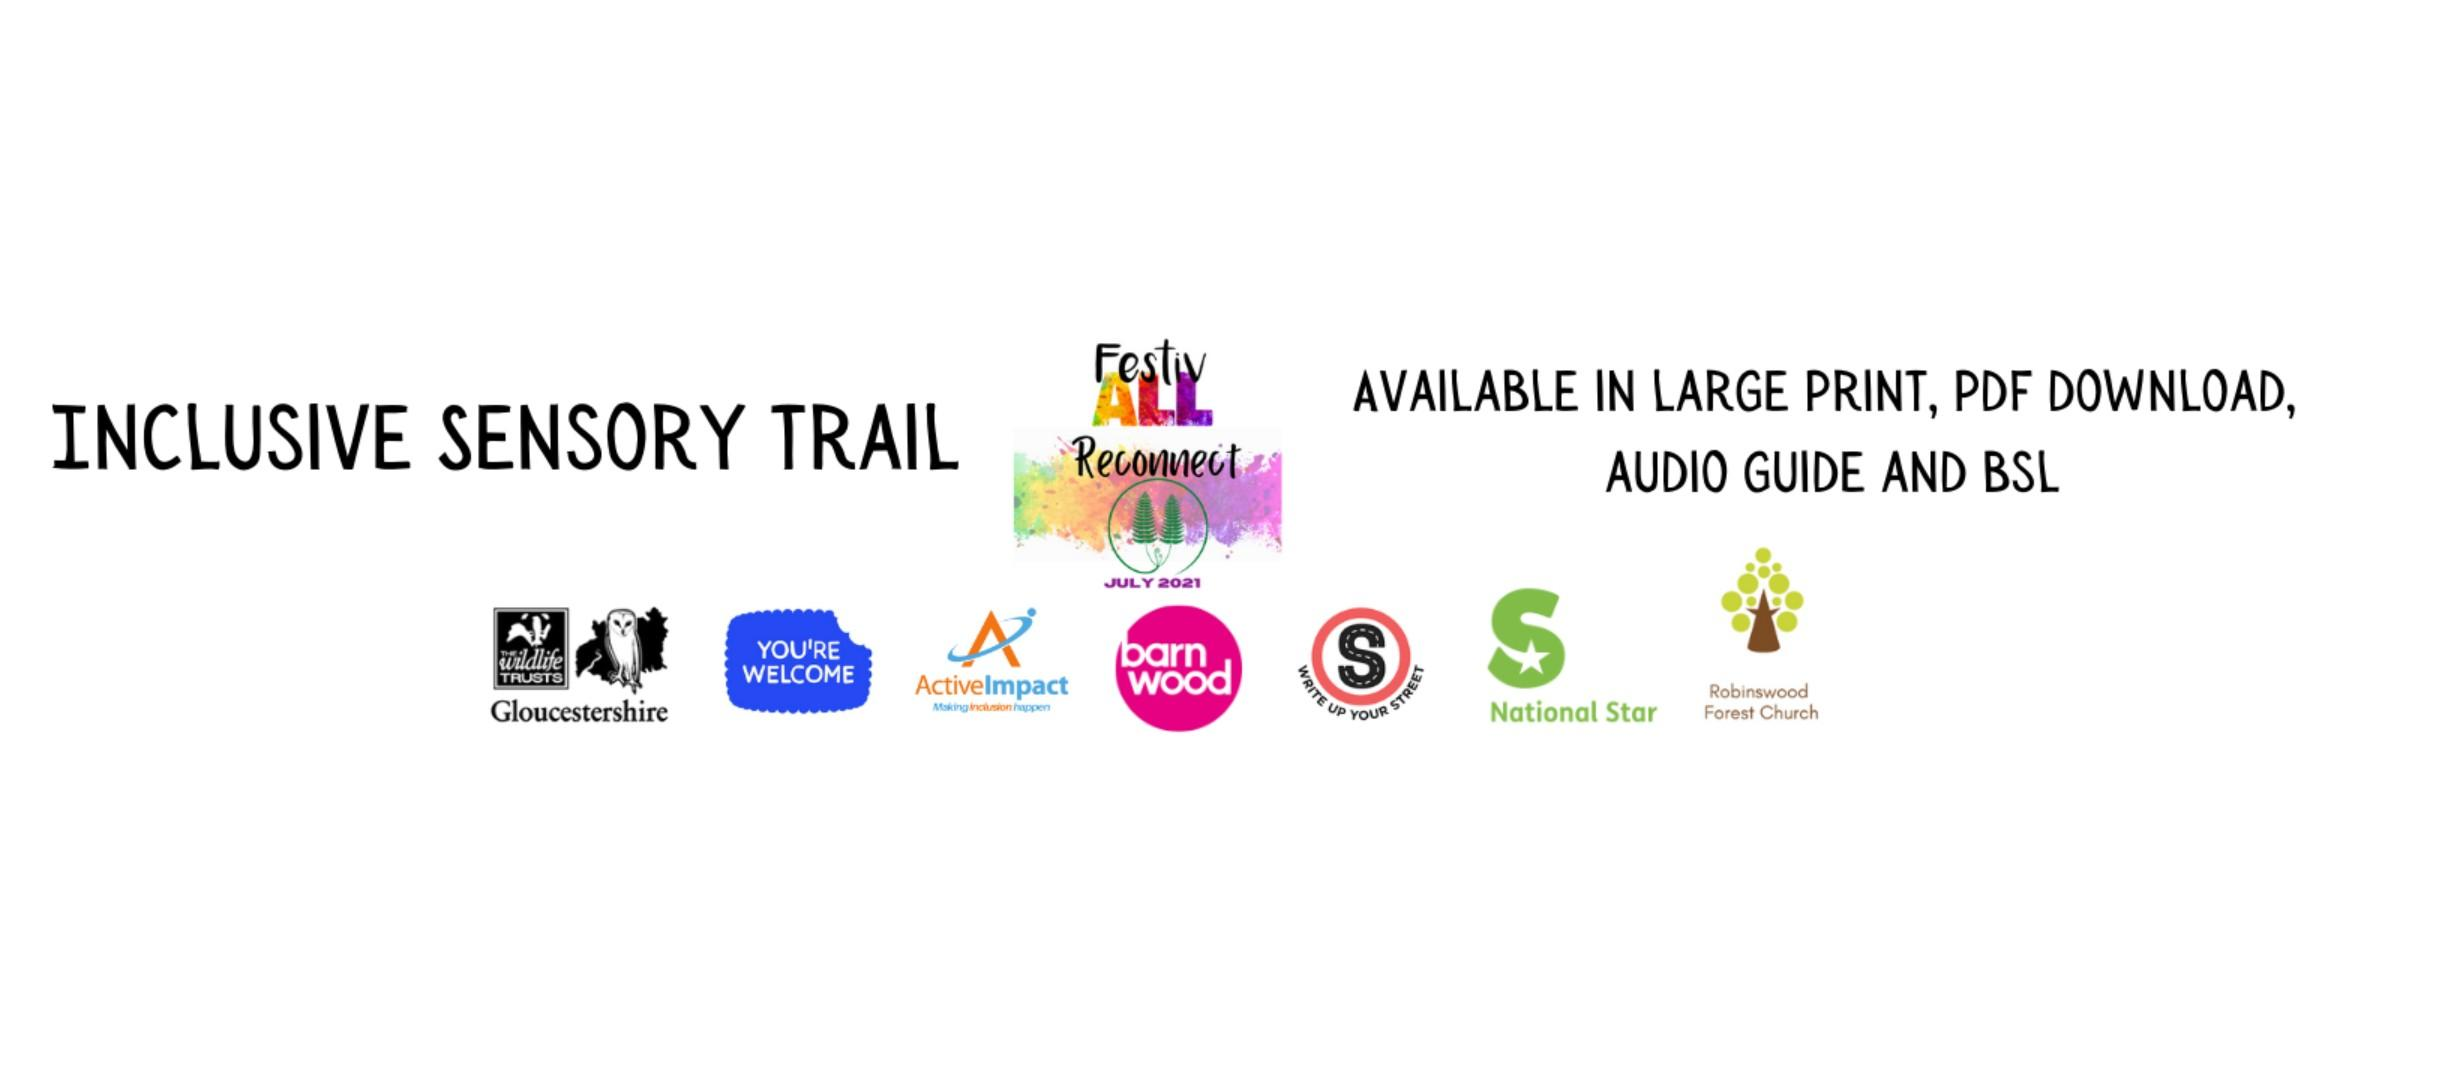 text reads Inclusive Sensory Trail available in large print, audio and BSL